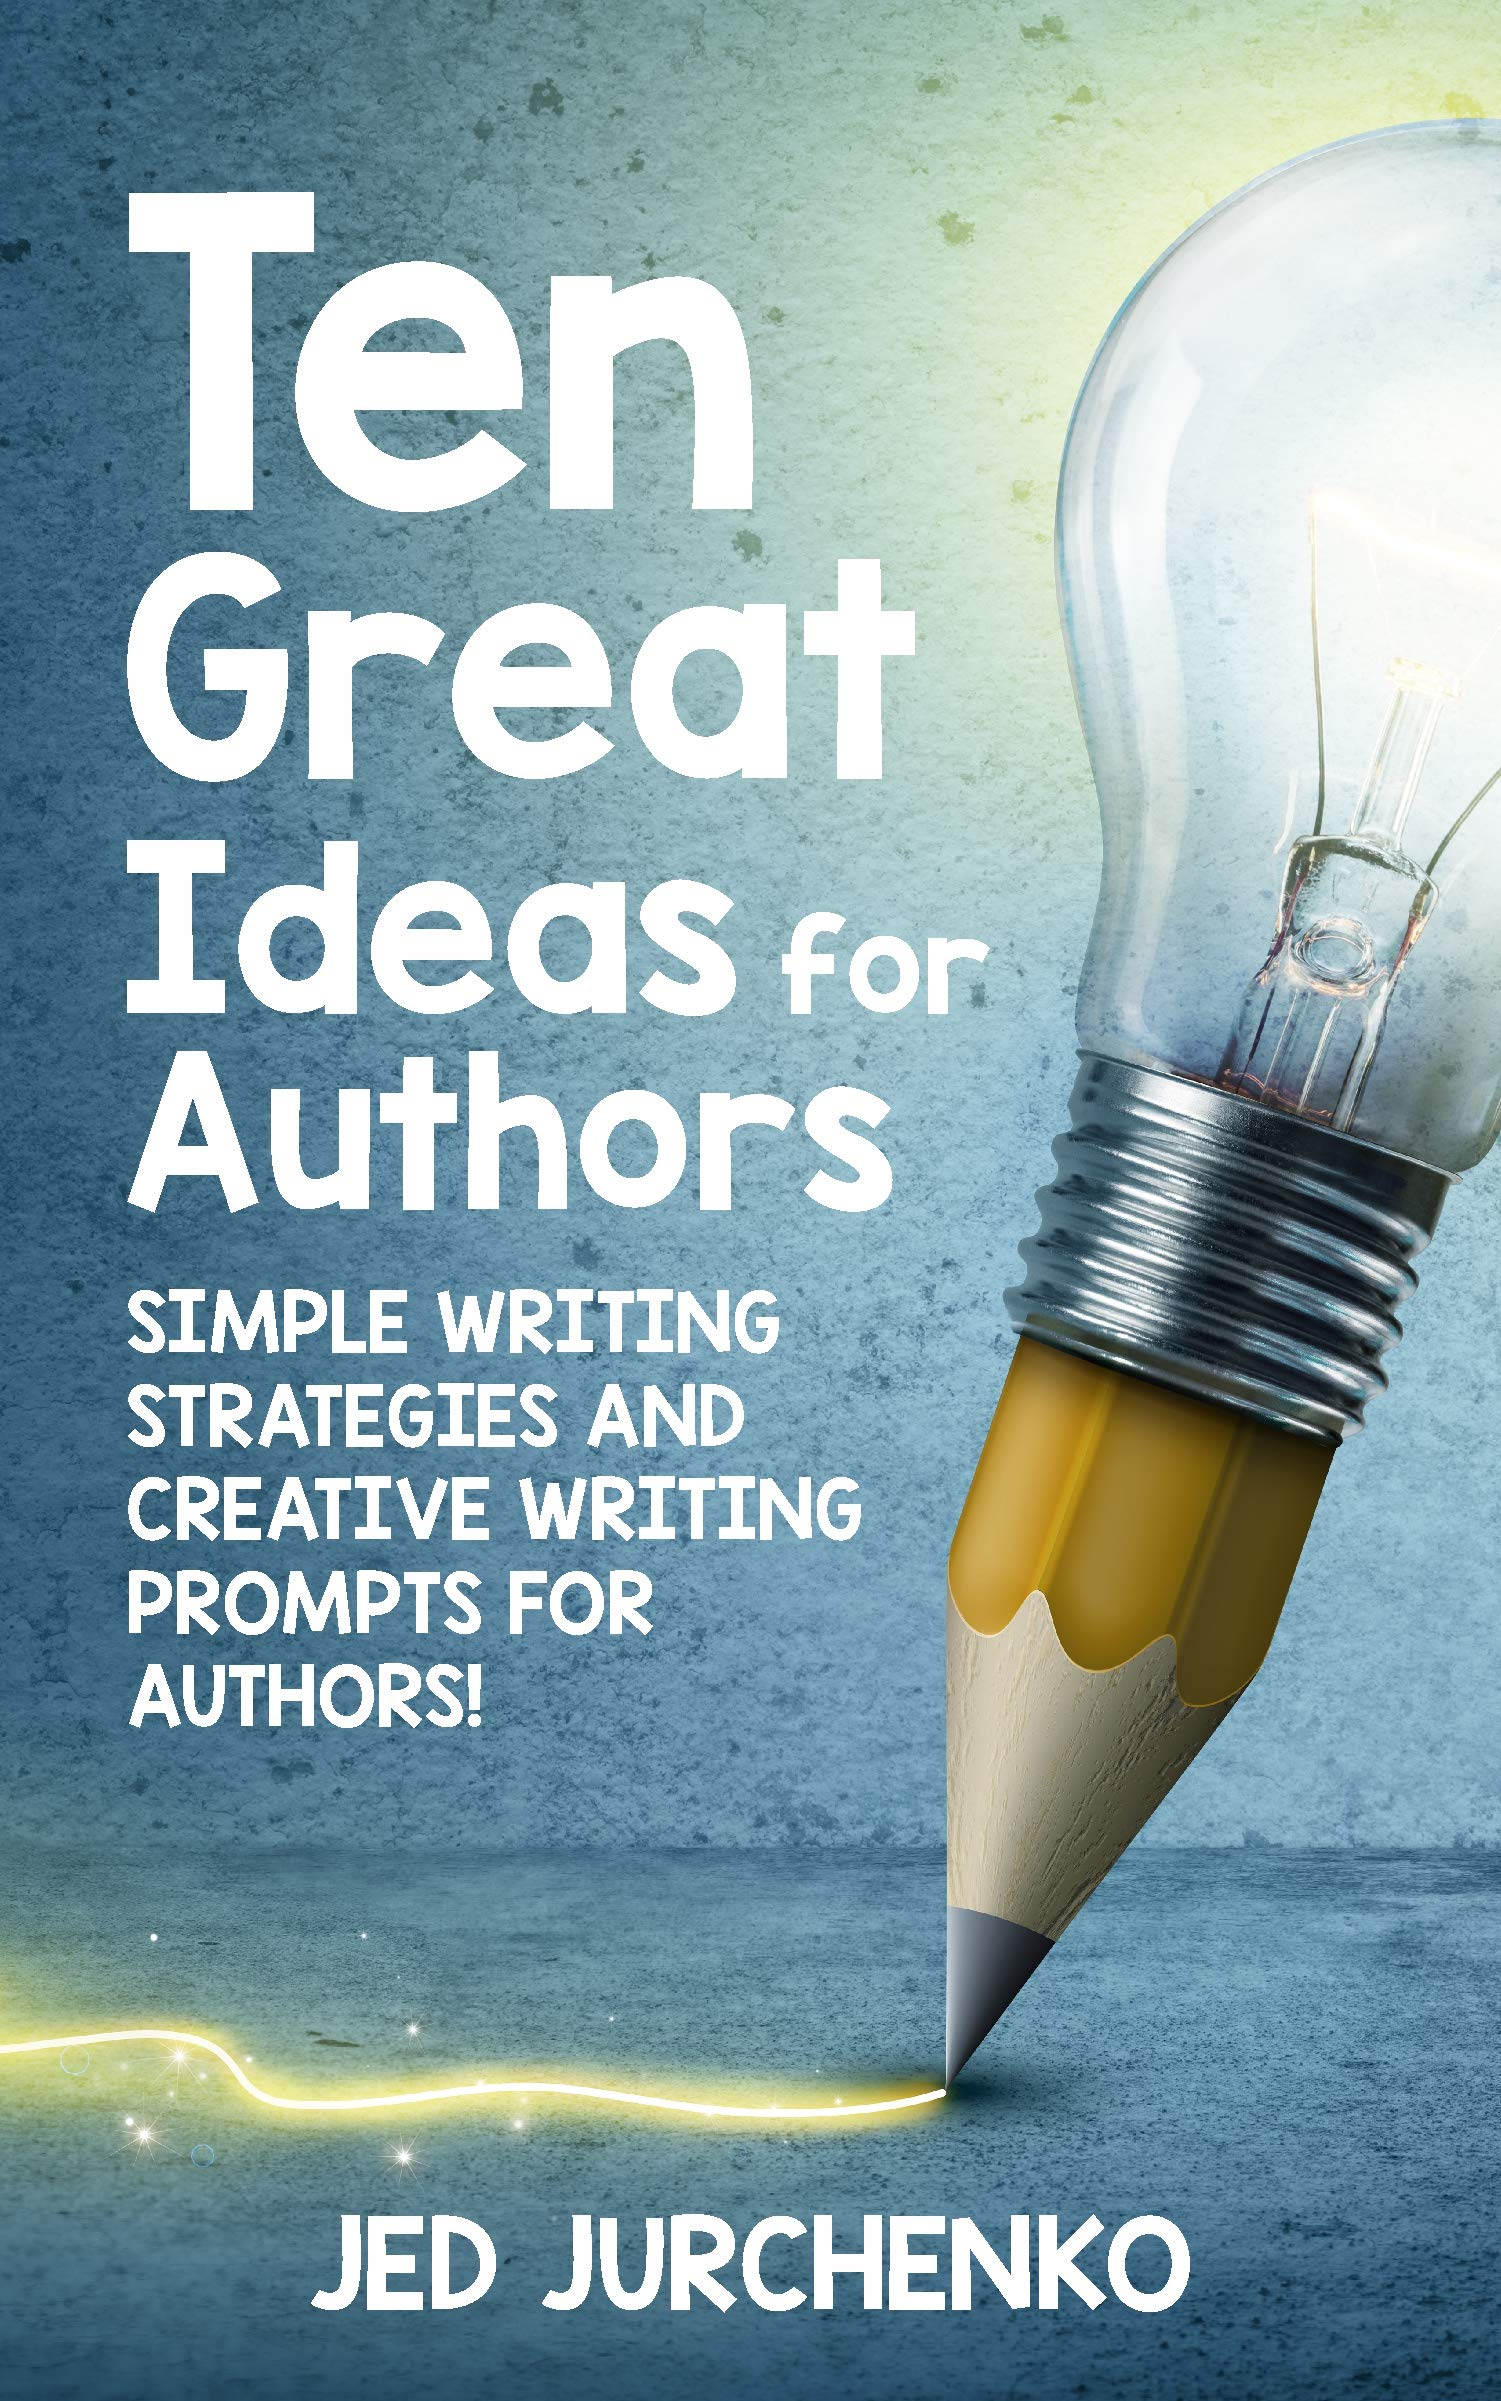 Download Ten Great Ideas for Authors: Simple writing strategies and creative writing prompts for authors! by Jed Jurchenko